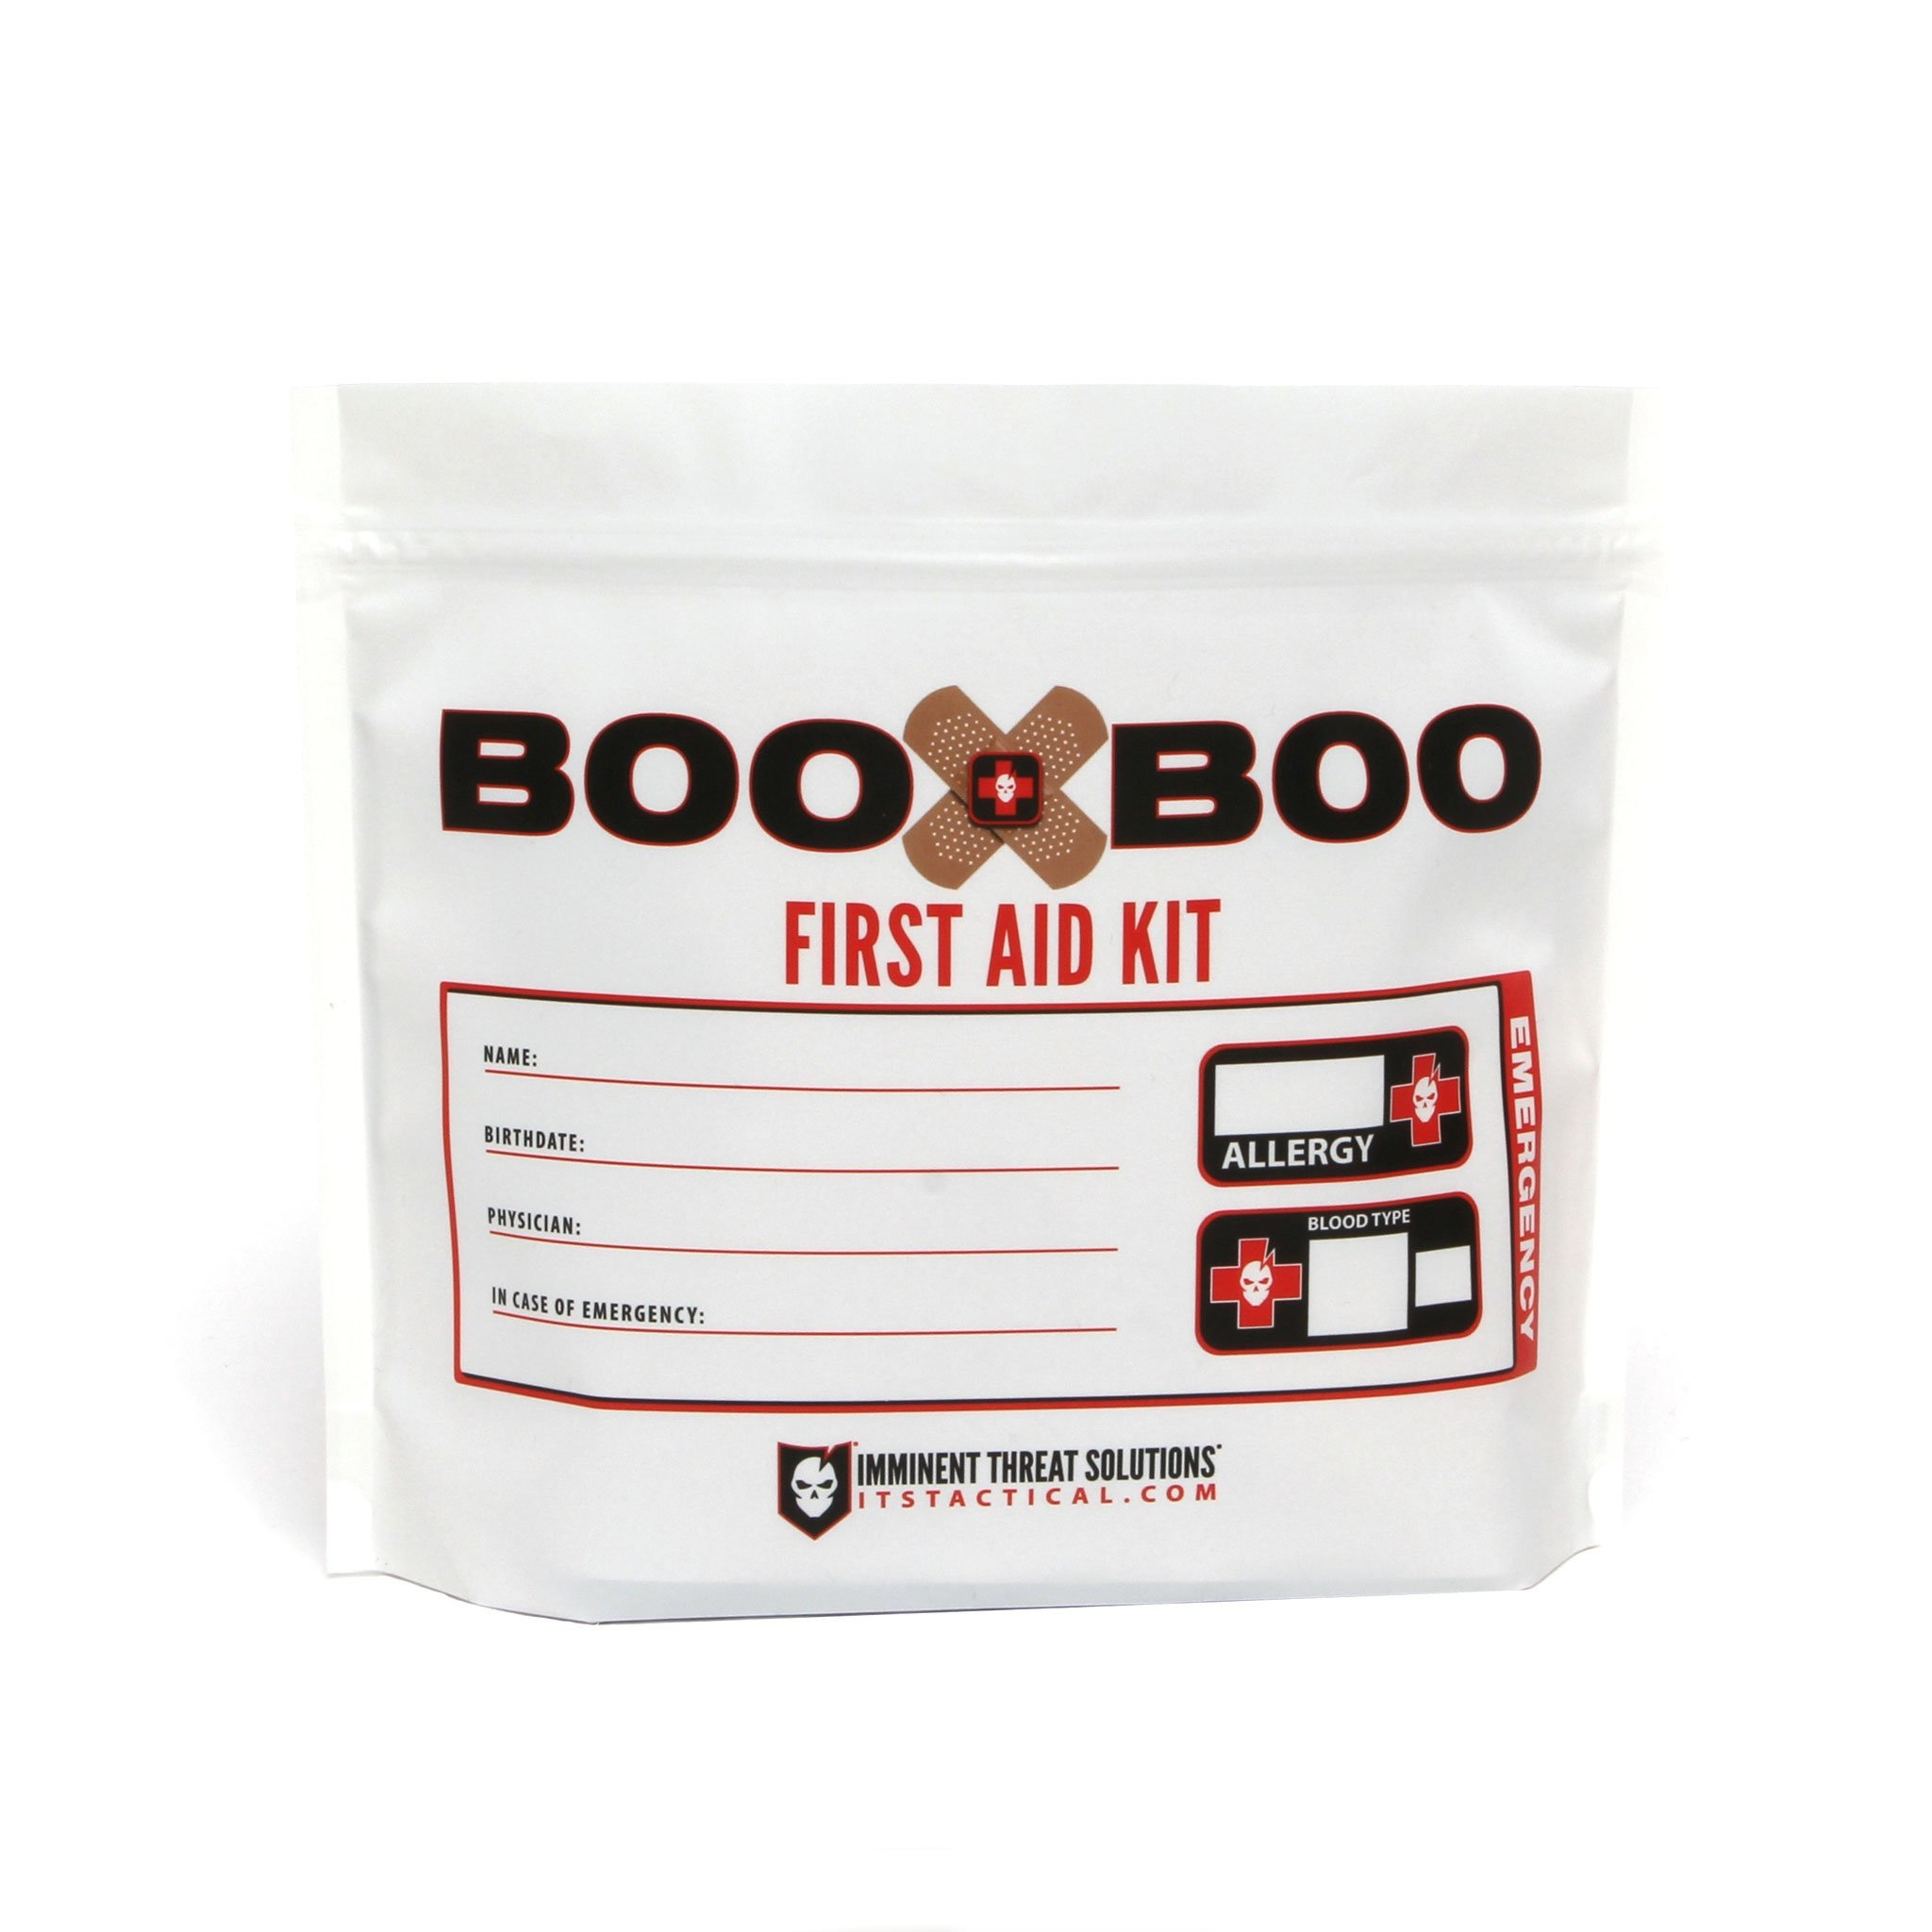 ITS Tactical ITS Tactical Boo-Boo First Aid Kit